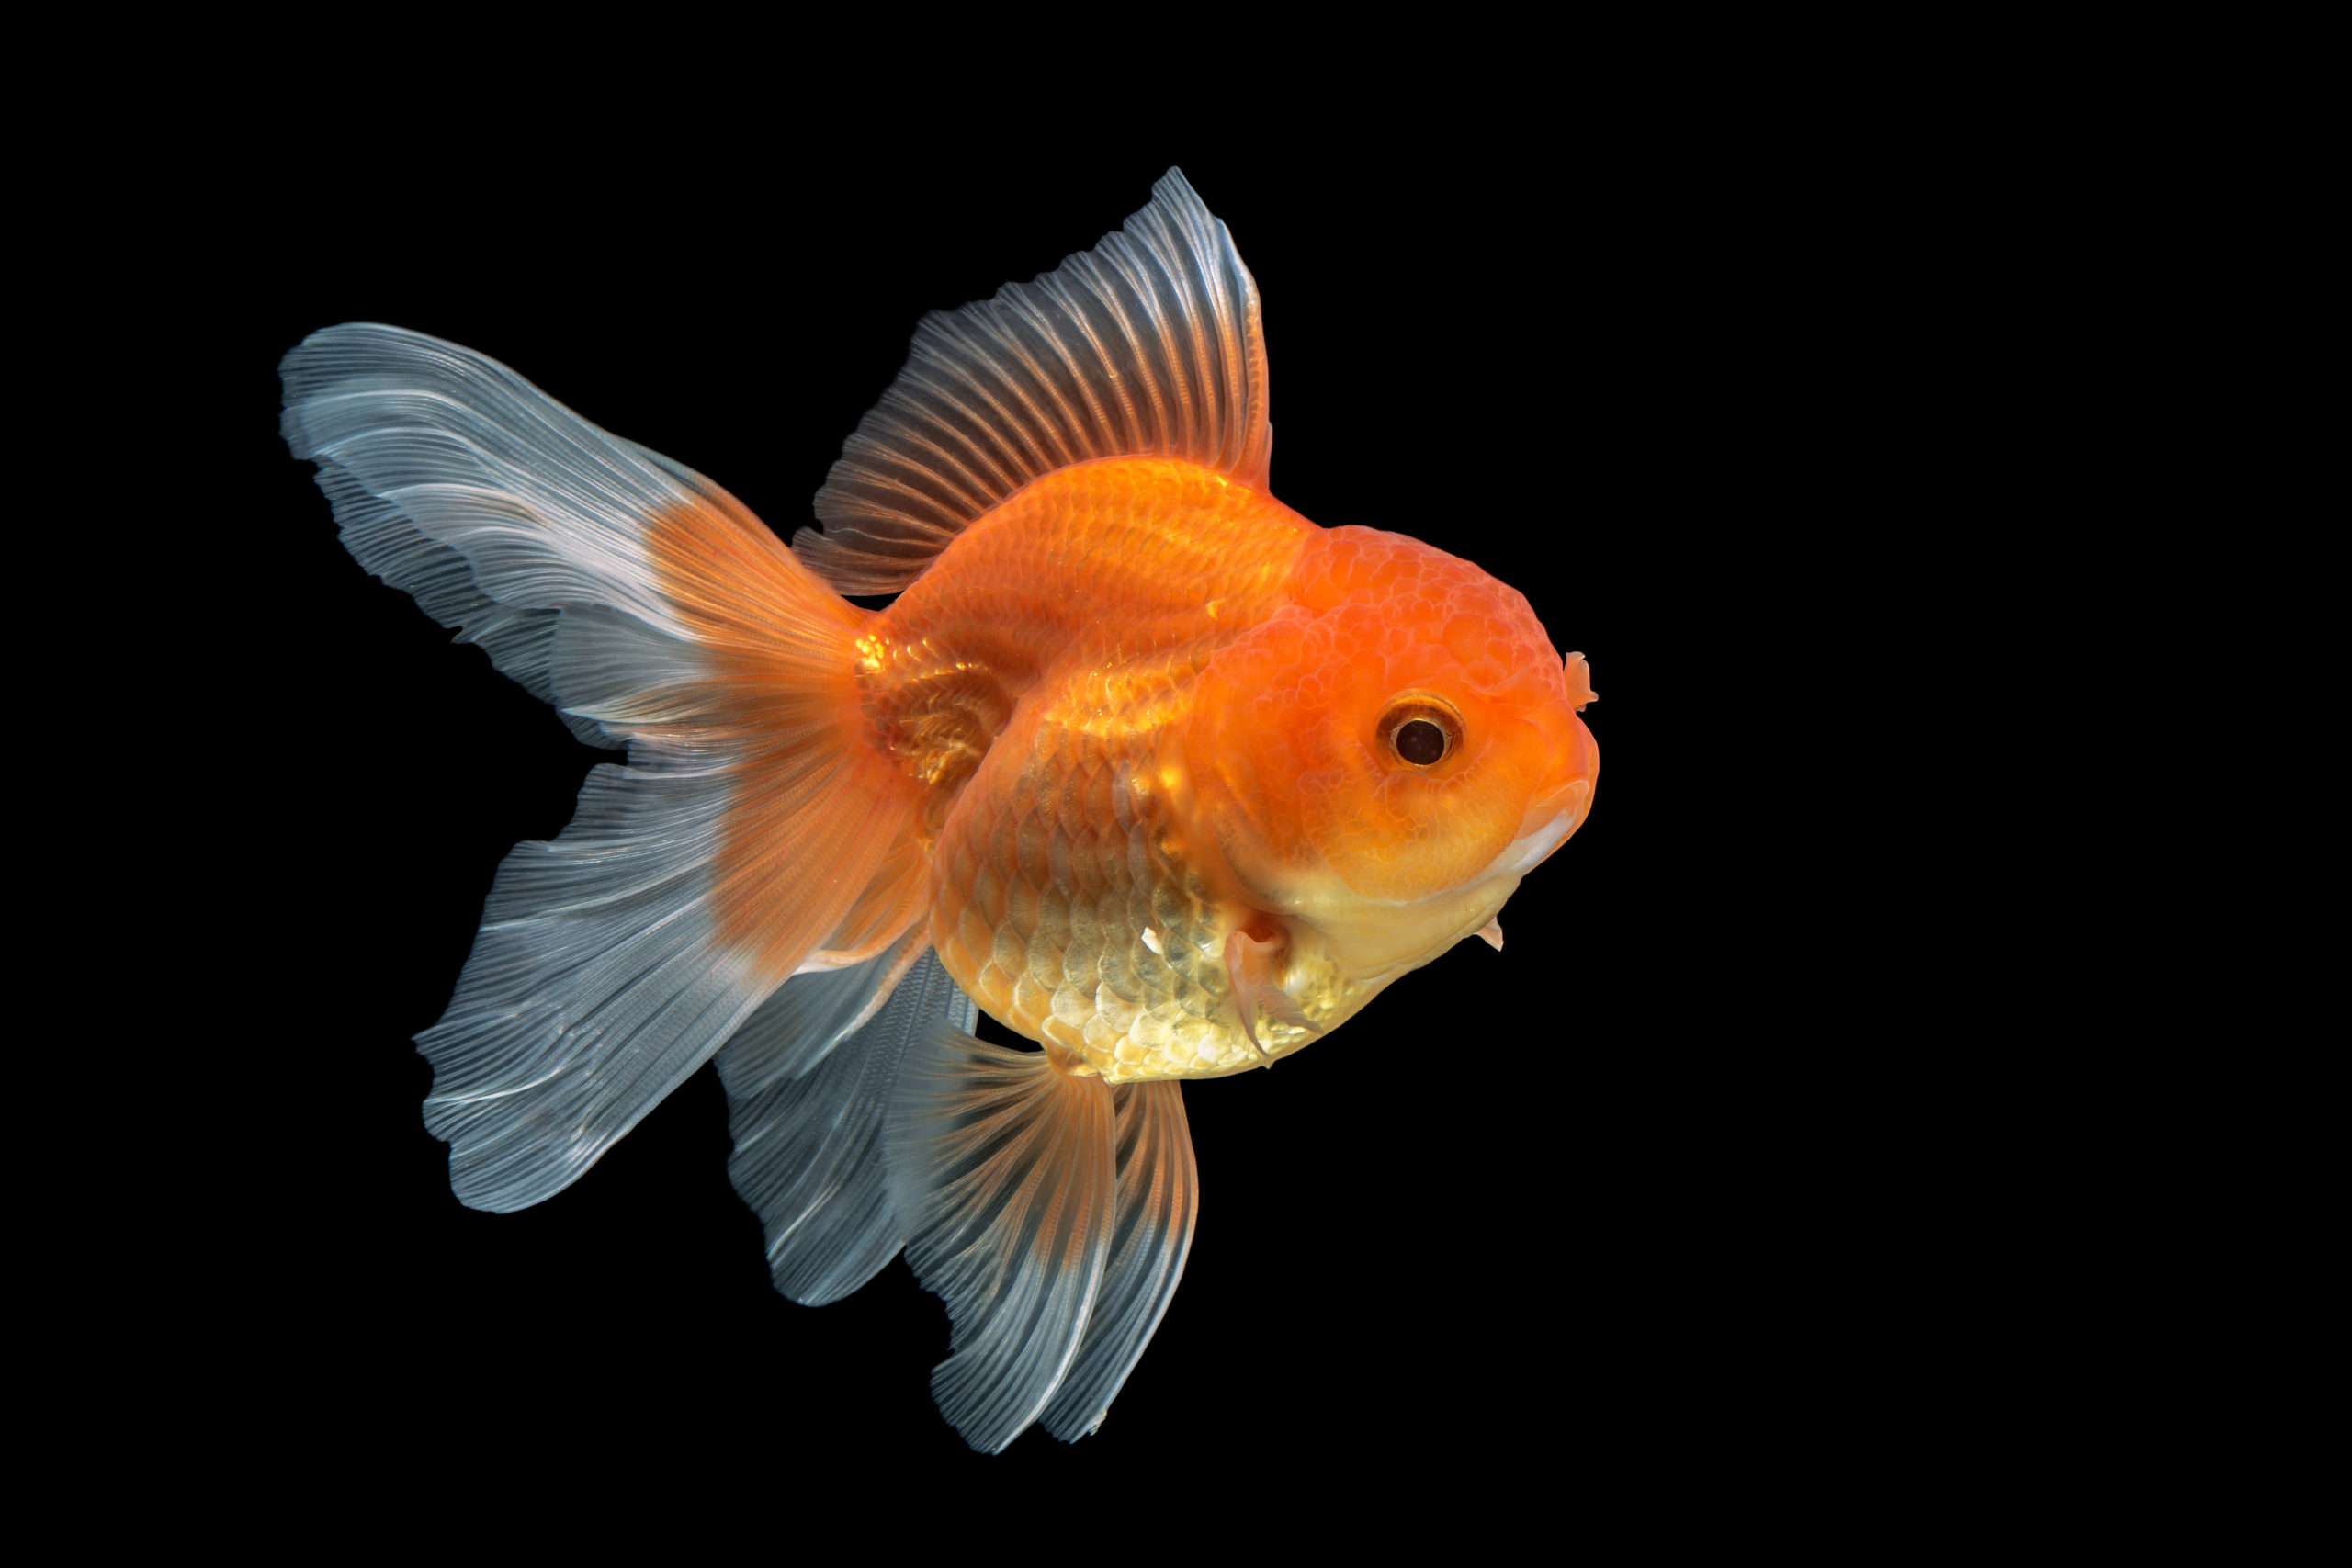 a fat goldfish, a visual description of my bloated ego